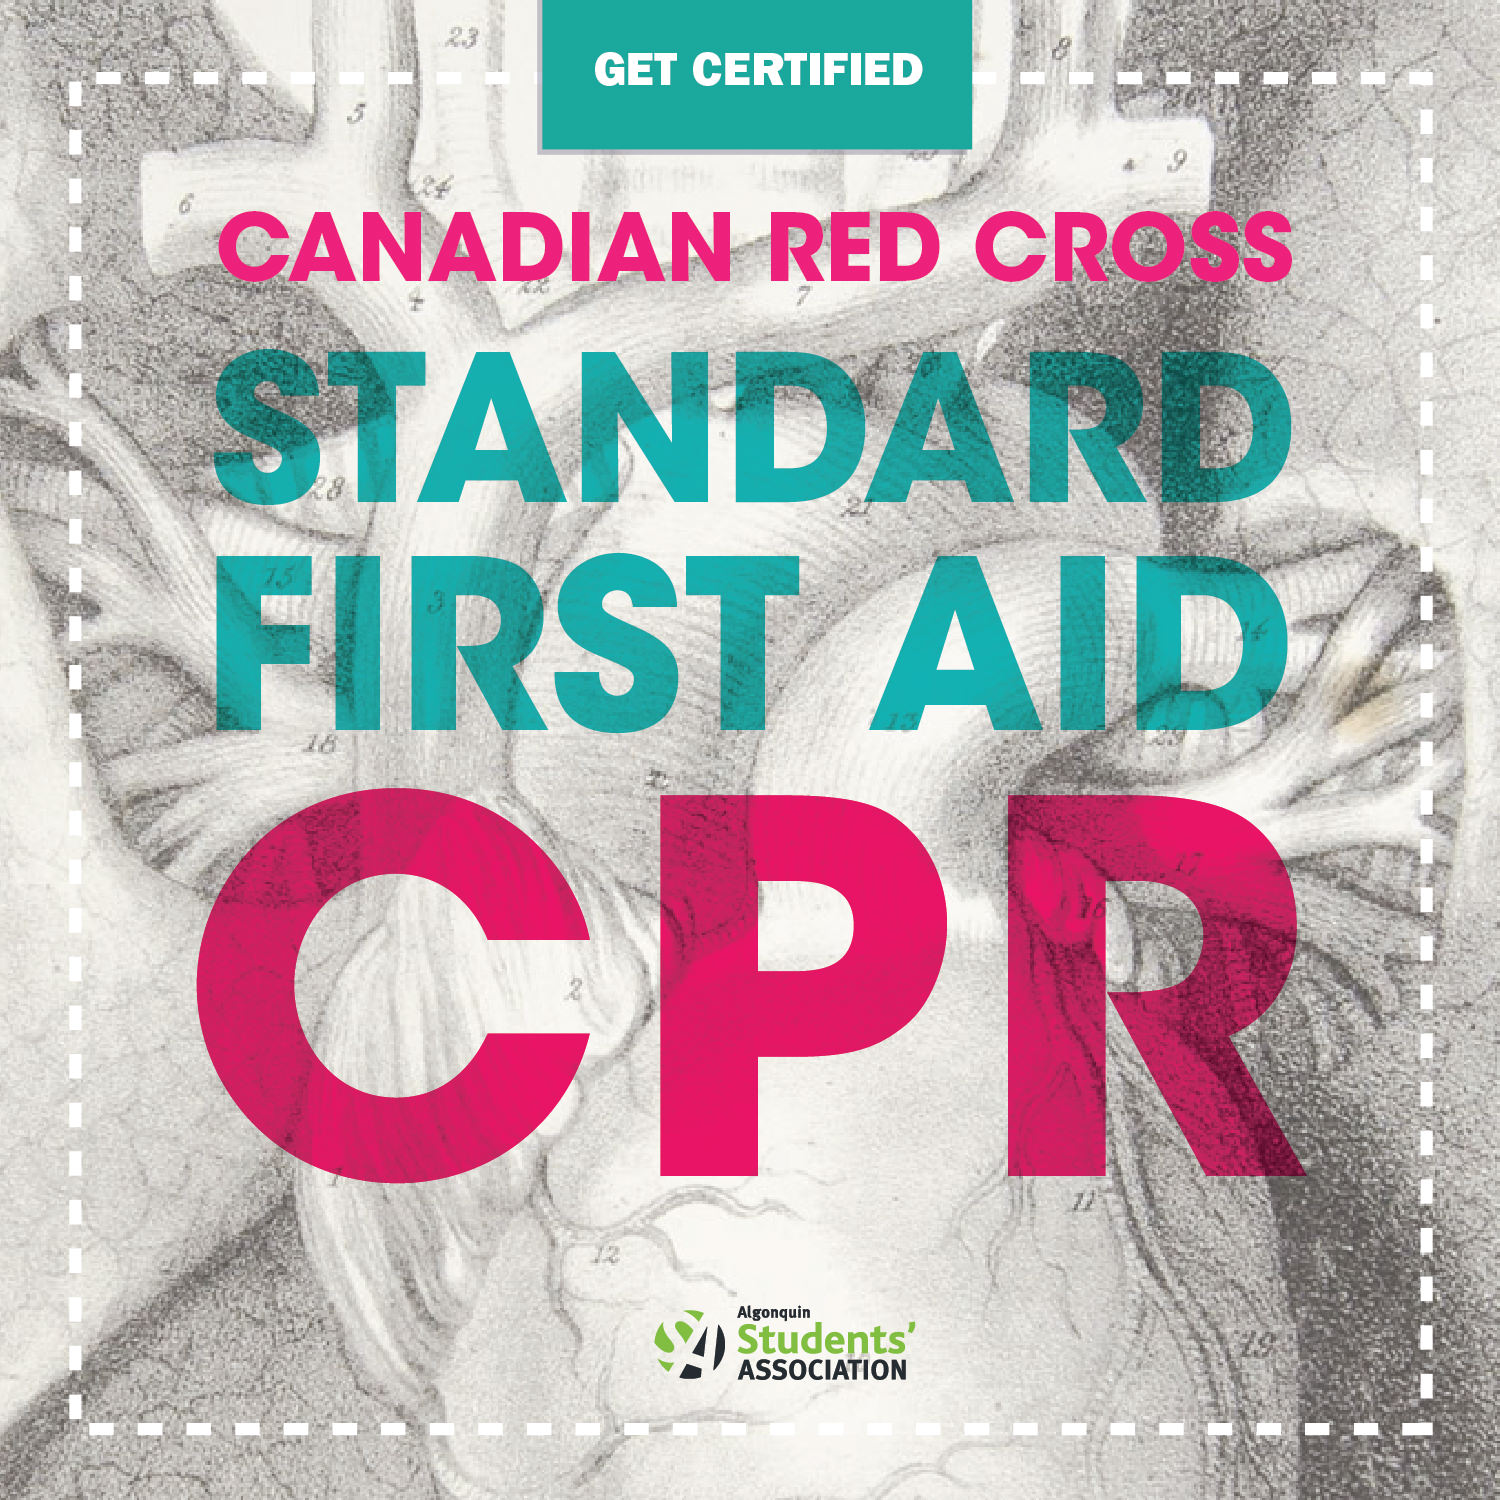 Algonquin College Students Association Cpr Level Chcp And